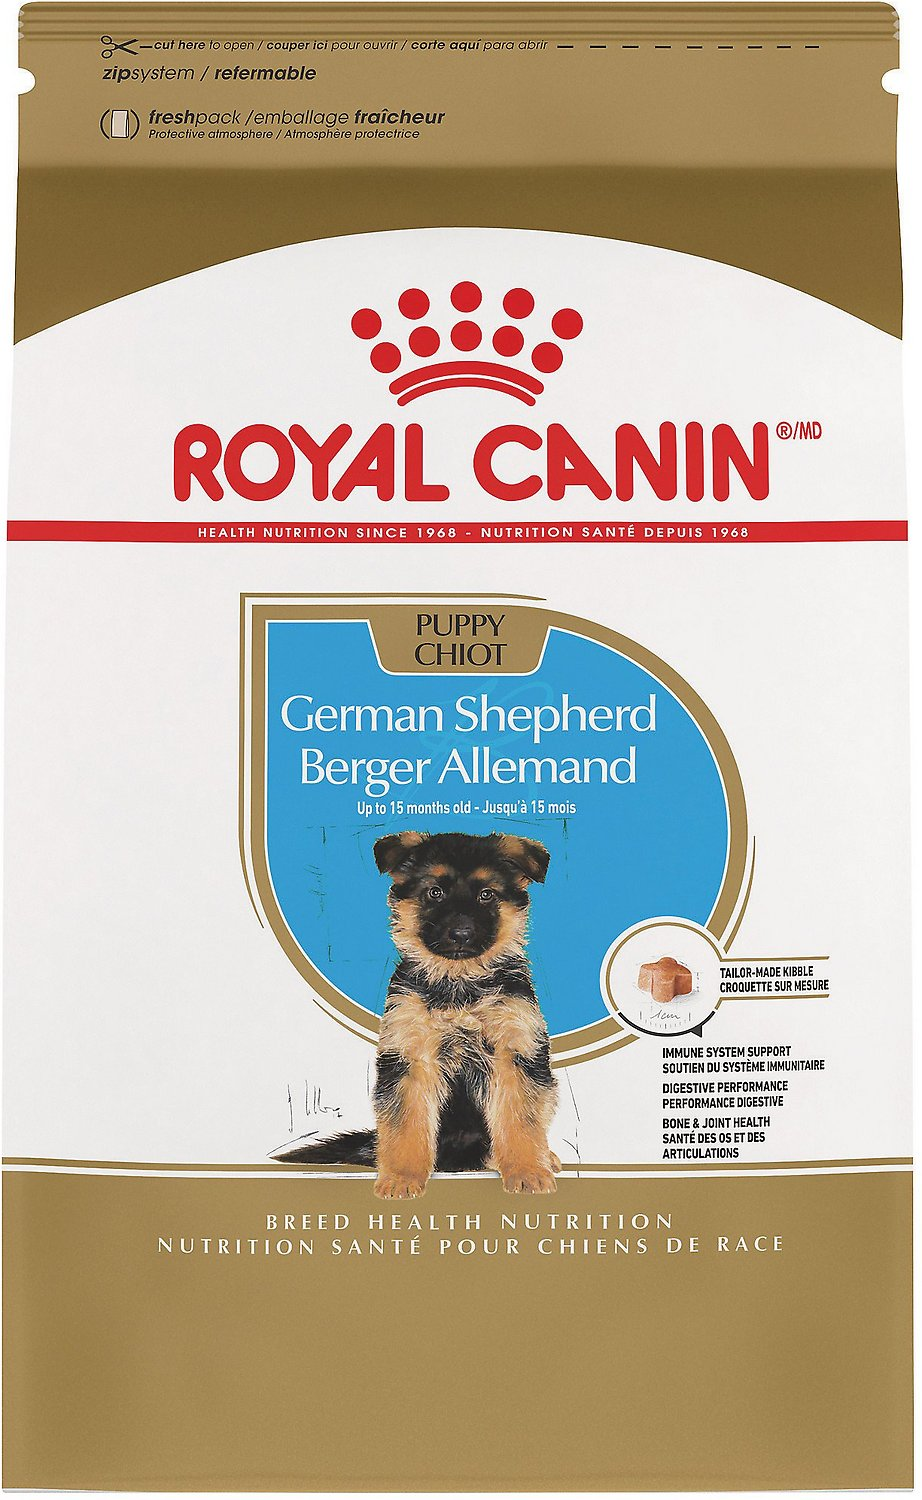 Royal canin german shepherd vs taste of the wild